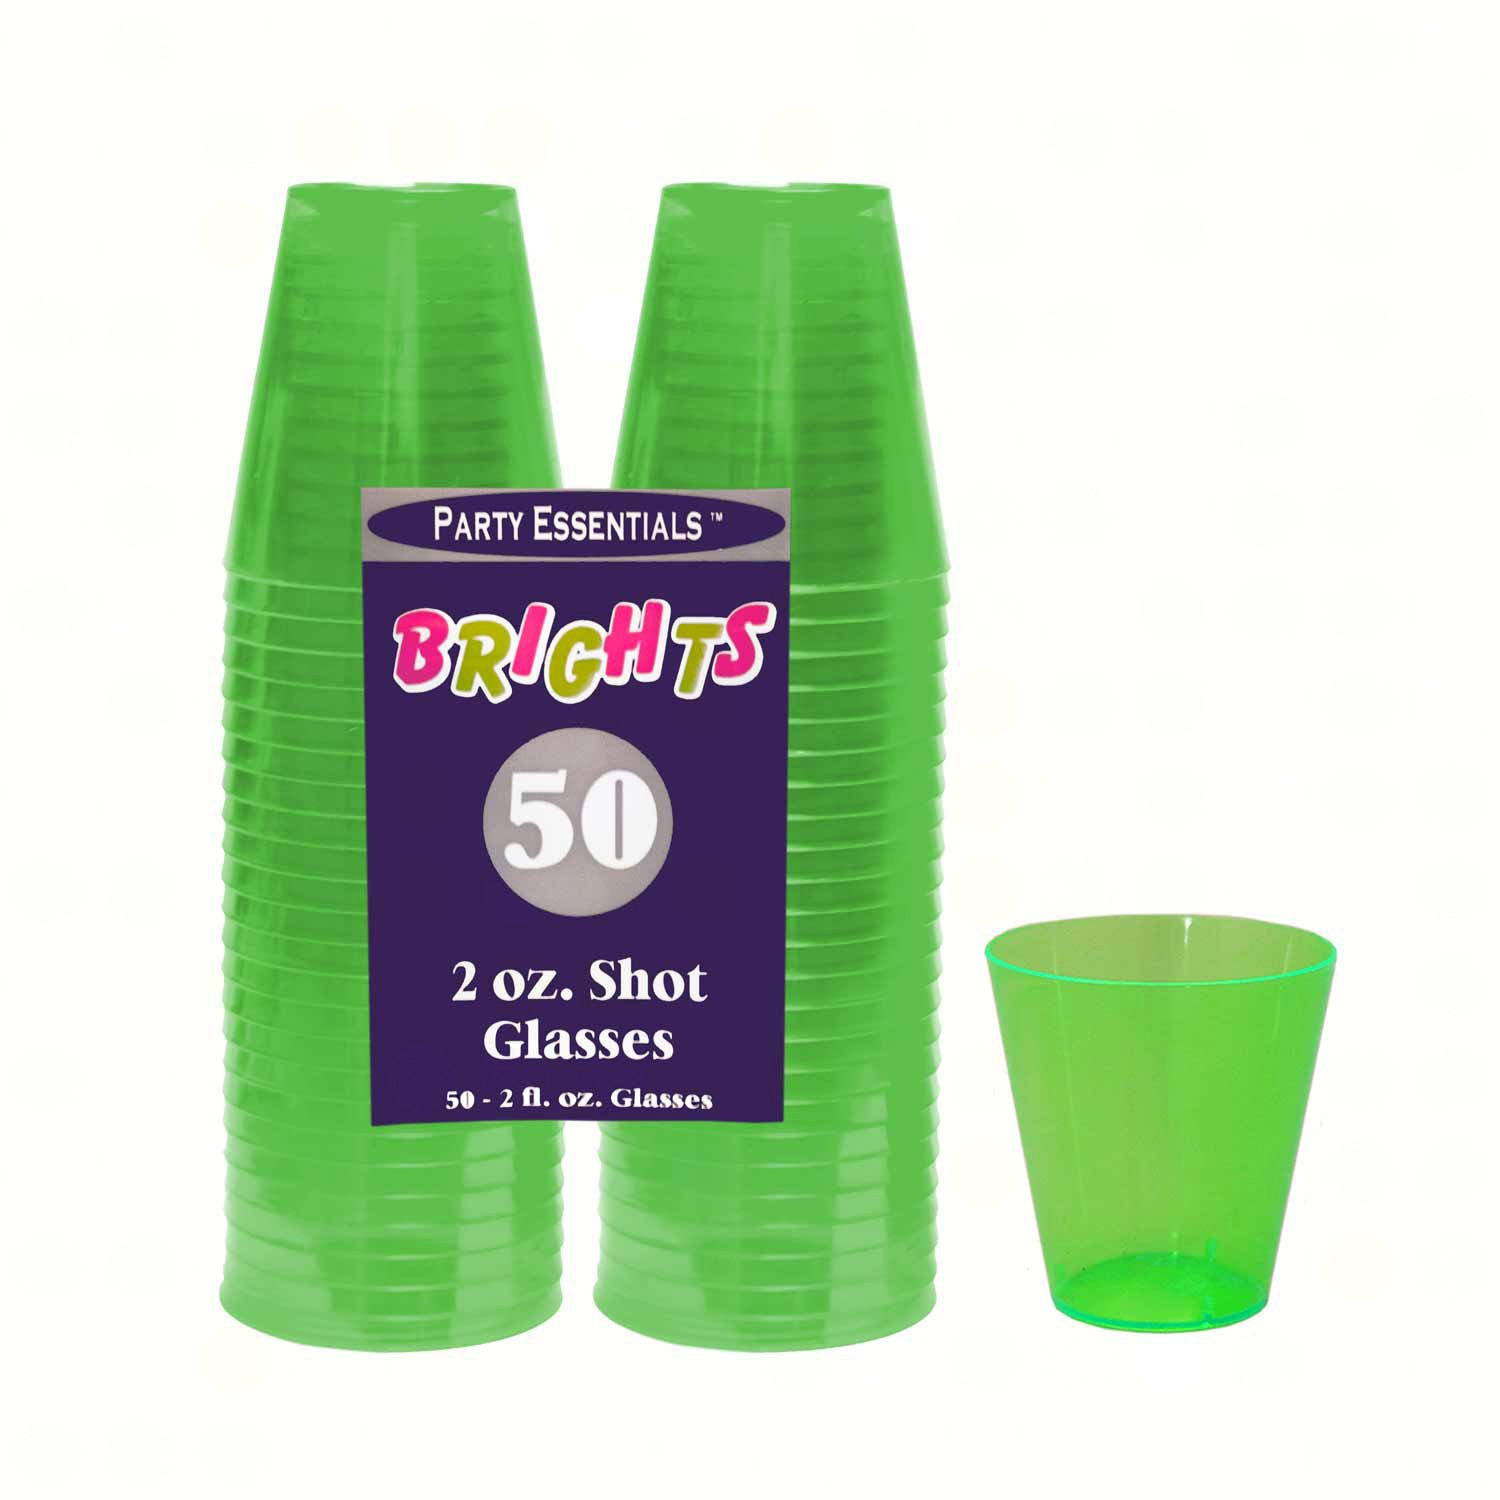 2 oz Shot Glasses Neon Green 50 ct